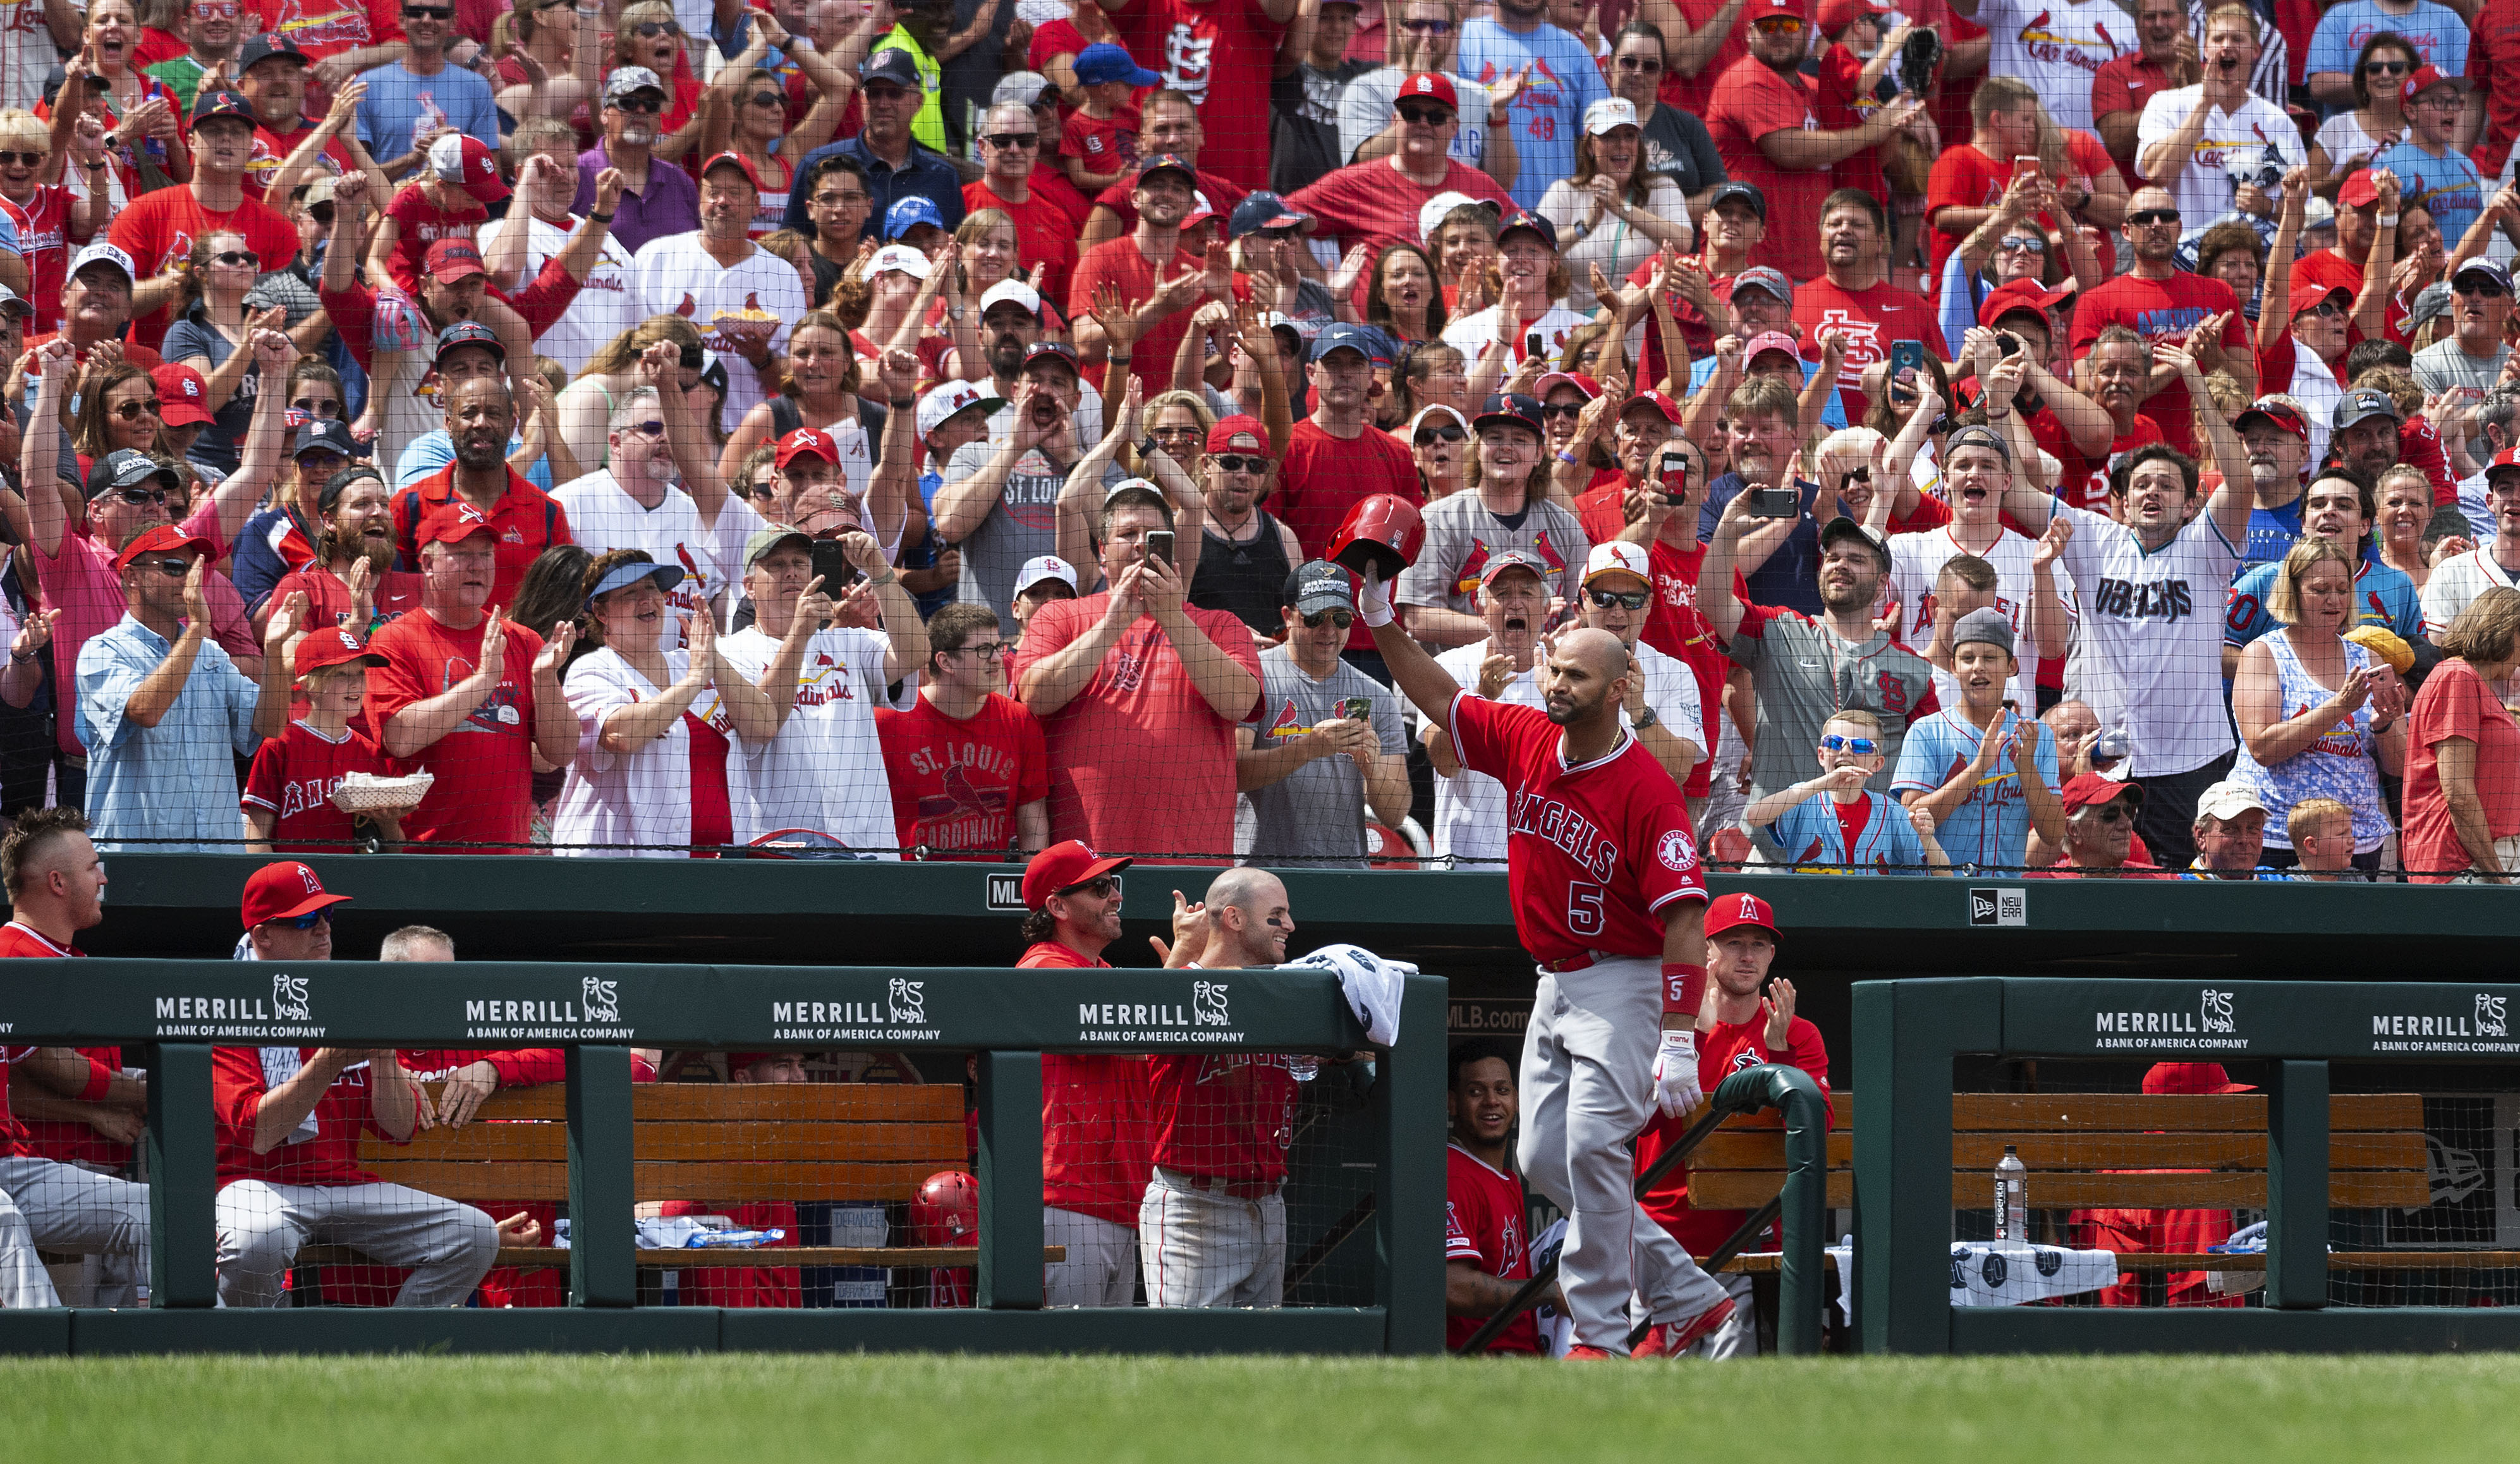 Pujols curtain call HR for Angels vs hometown Cards in loss